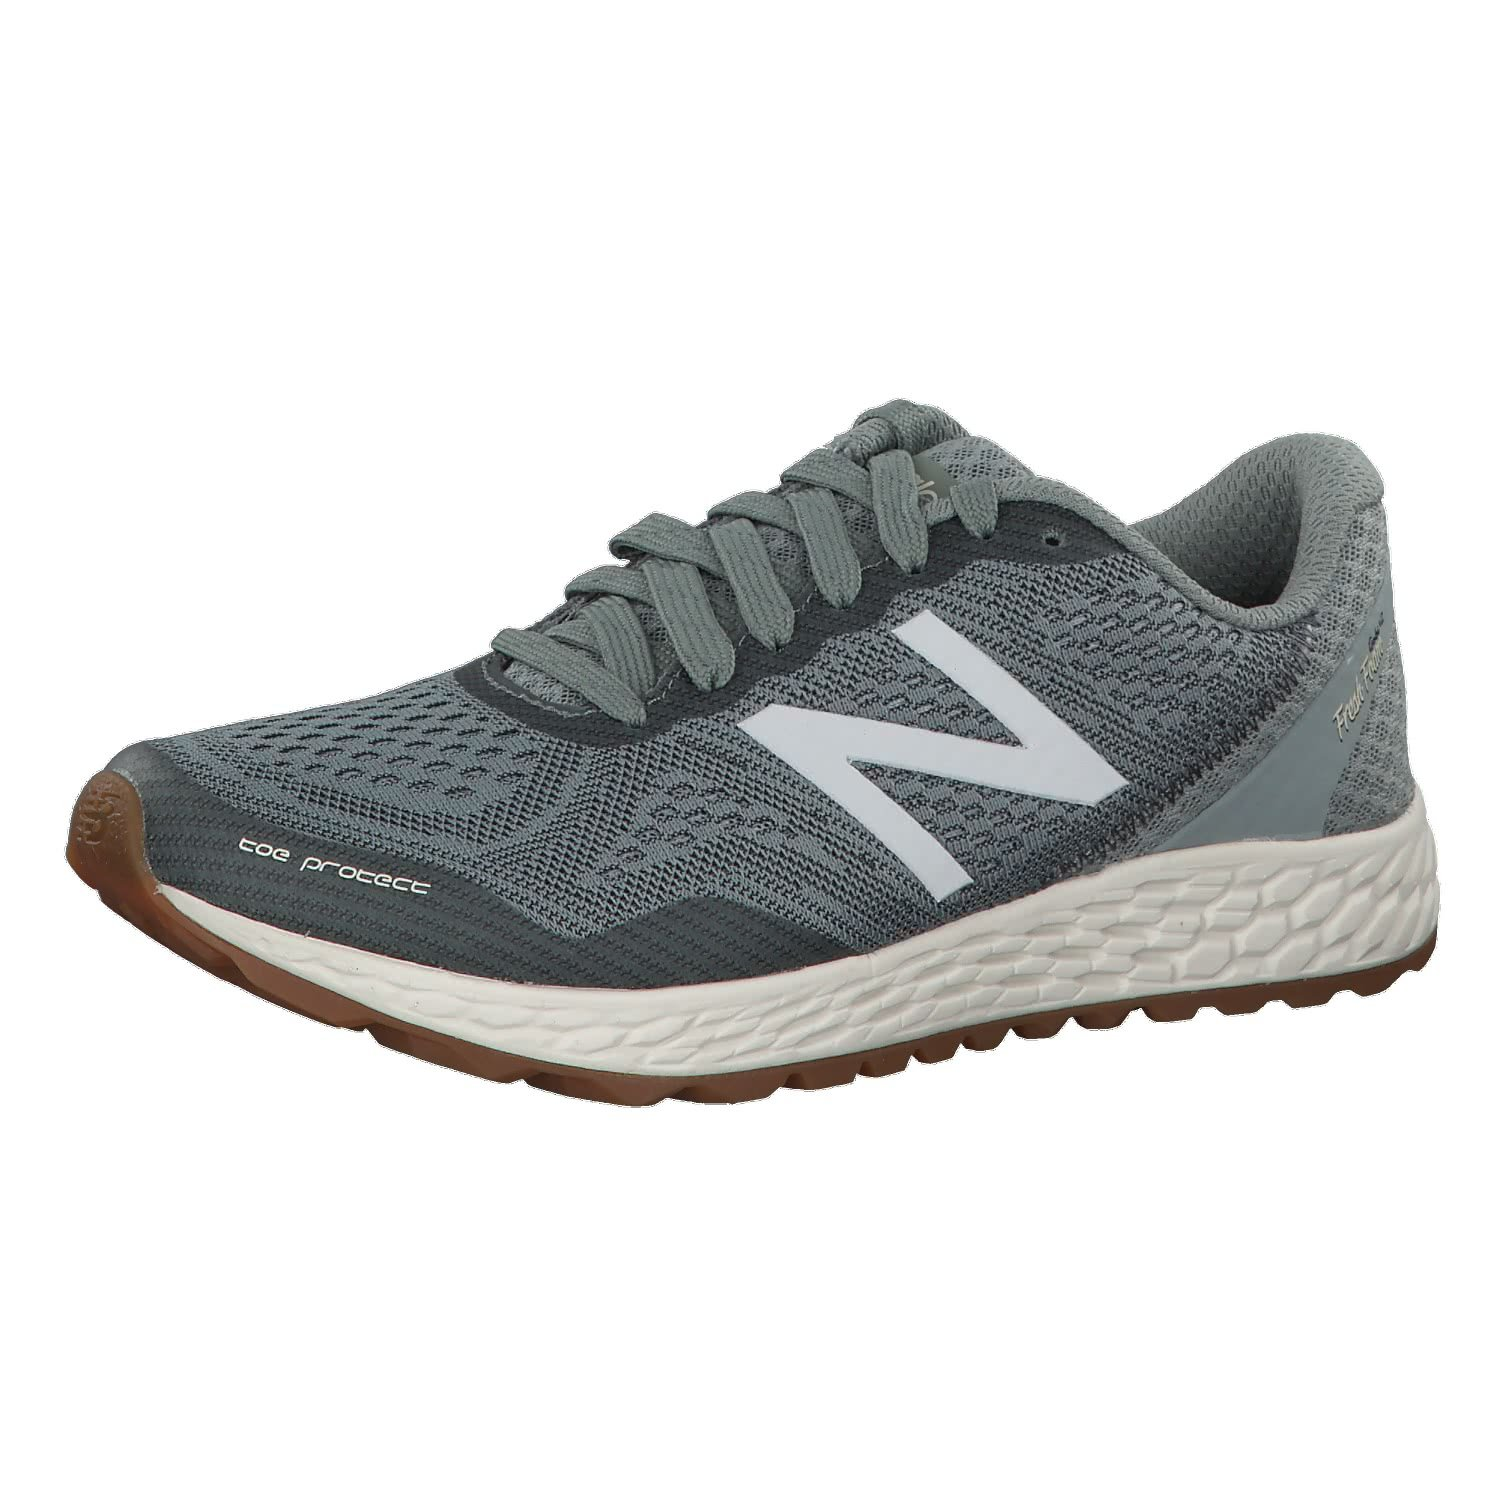 New Balance Women's Gobiv2 Running Shoe B0751P1XJG 10 B(M) US|Seed With Grove